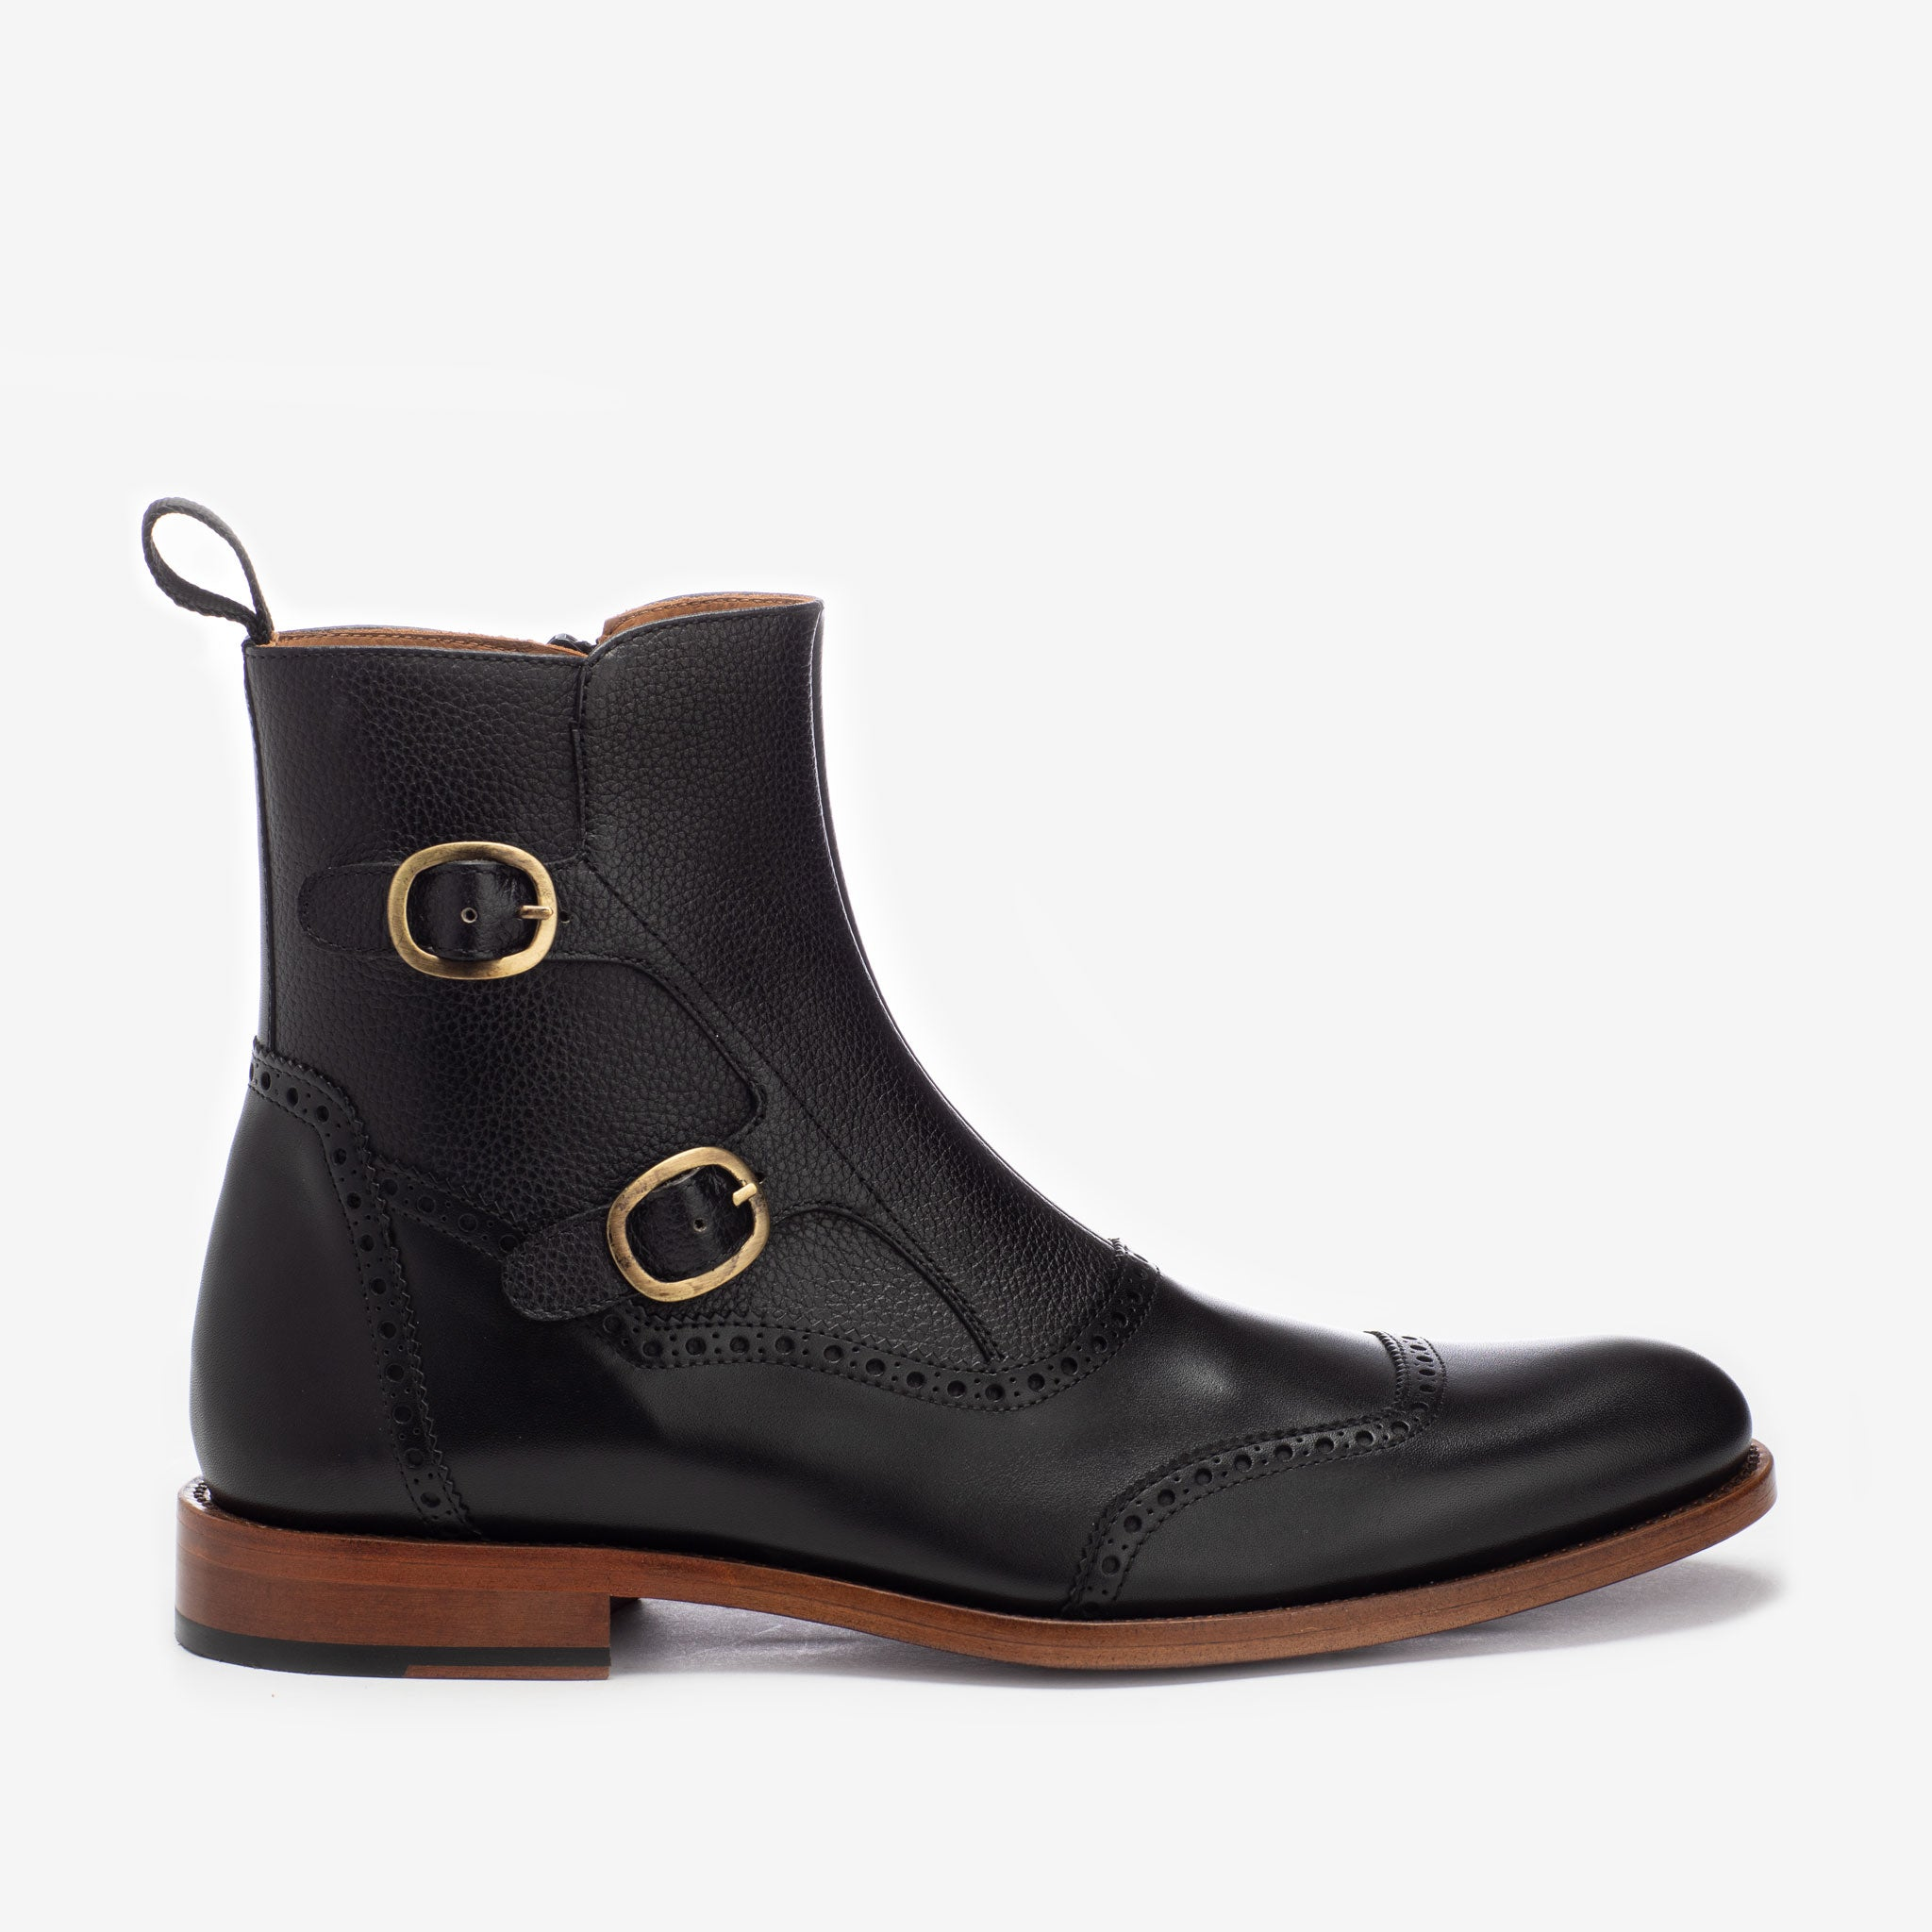 The Dustin Boot in Black